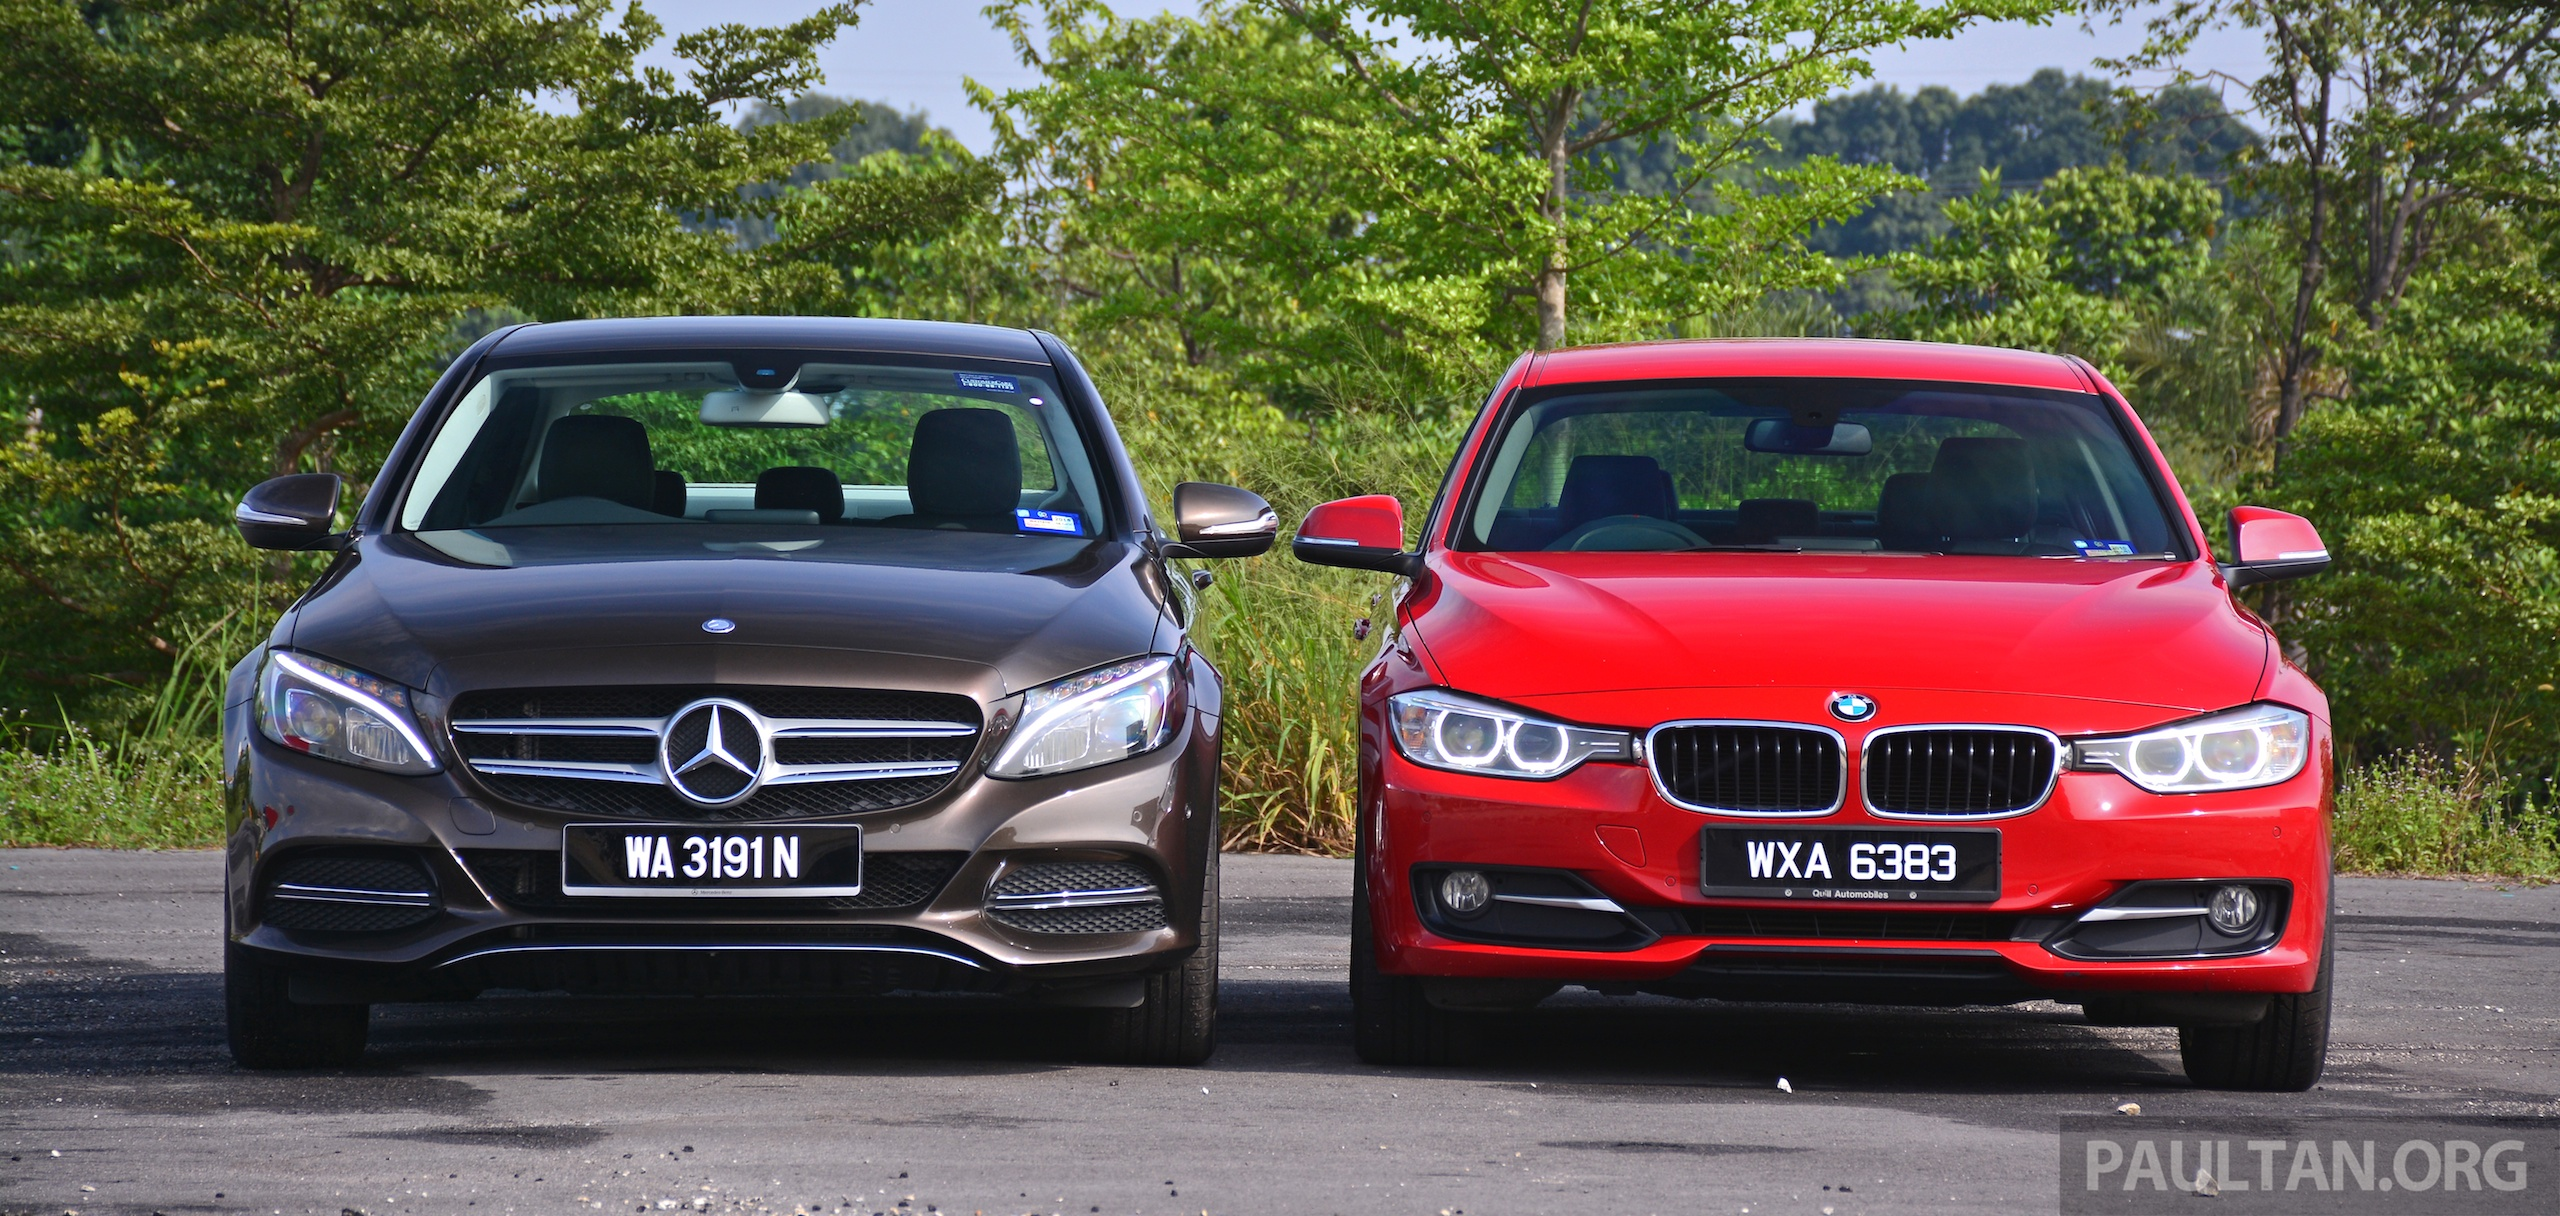 W205 mercedes benz c class vs f30 bmw 3 series for Bmw mercedes benz